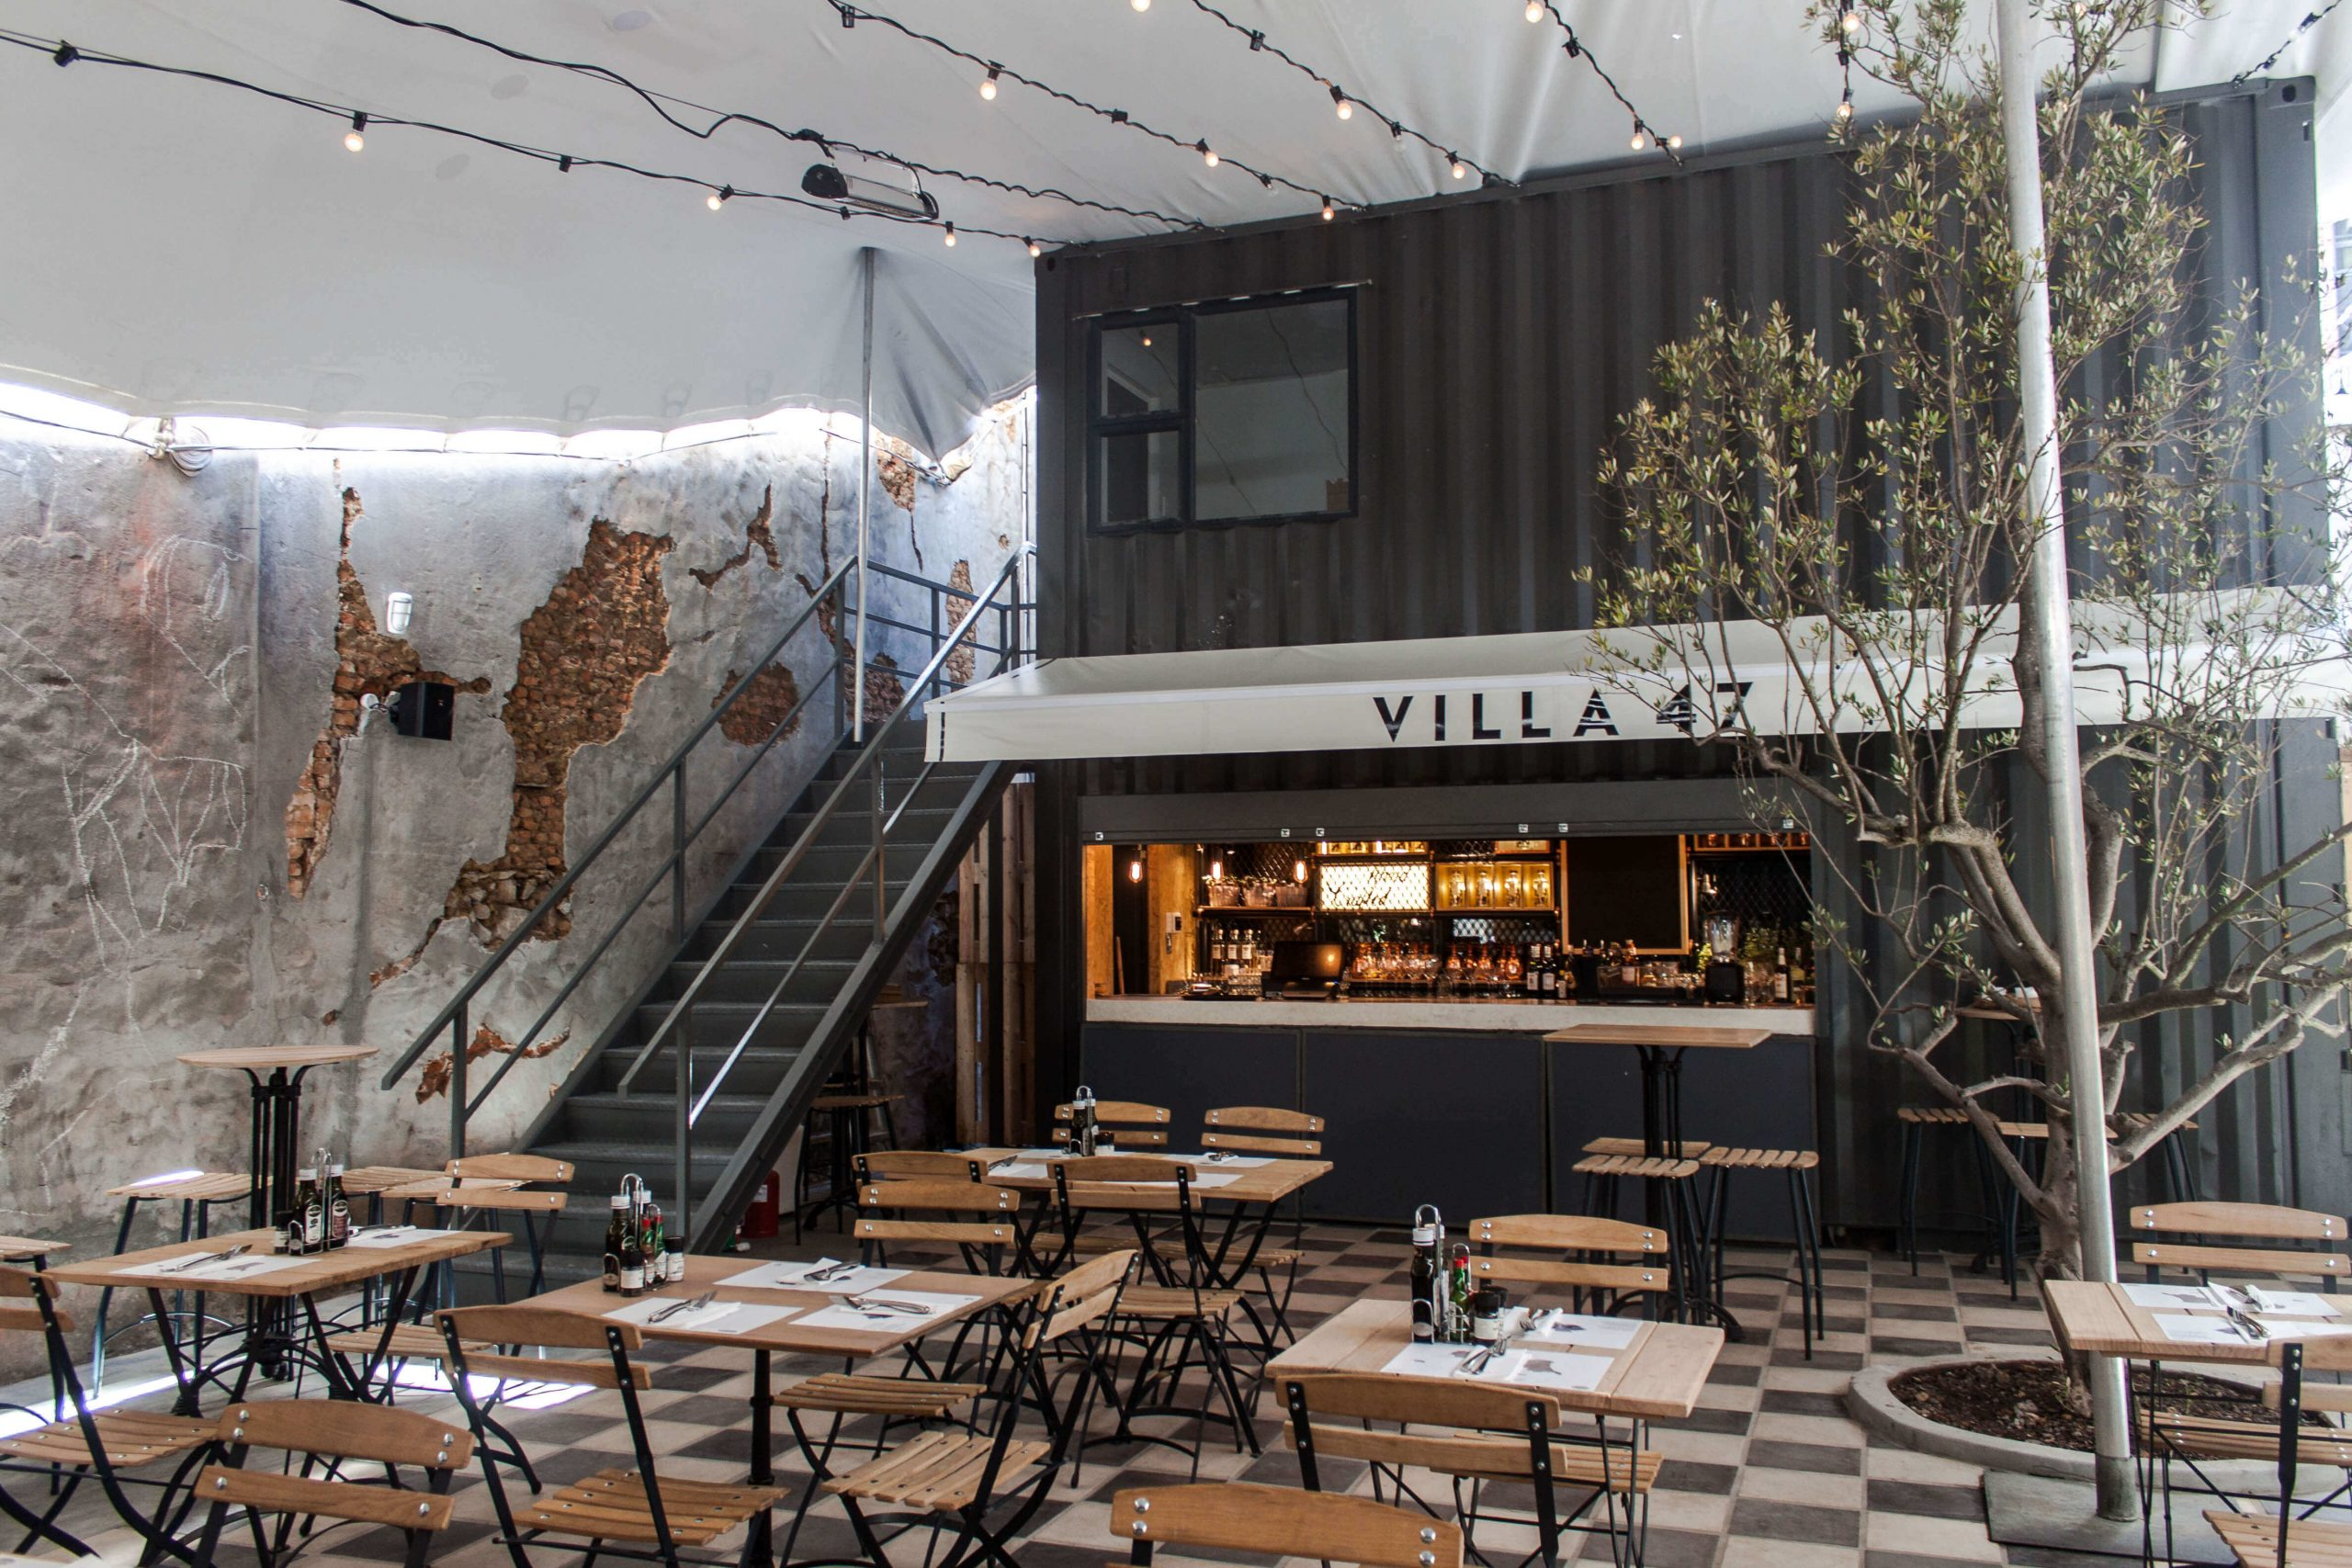 Shipping Containers For Sale - Restaurant Conversion